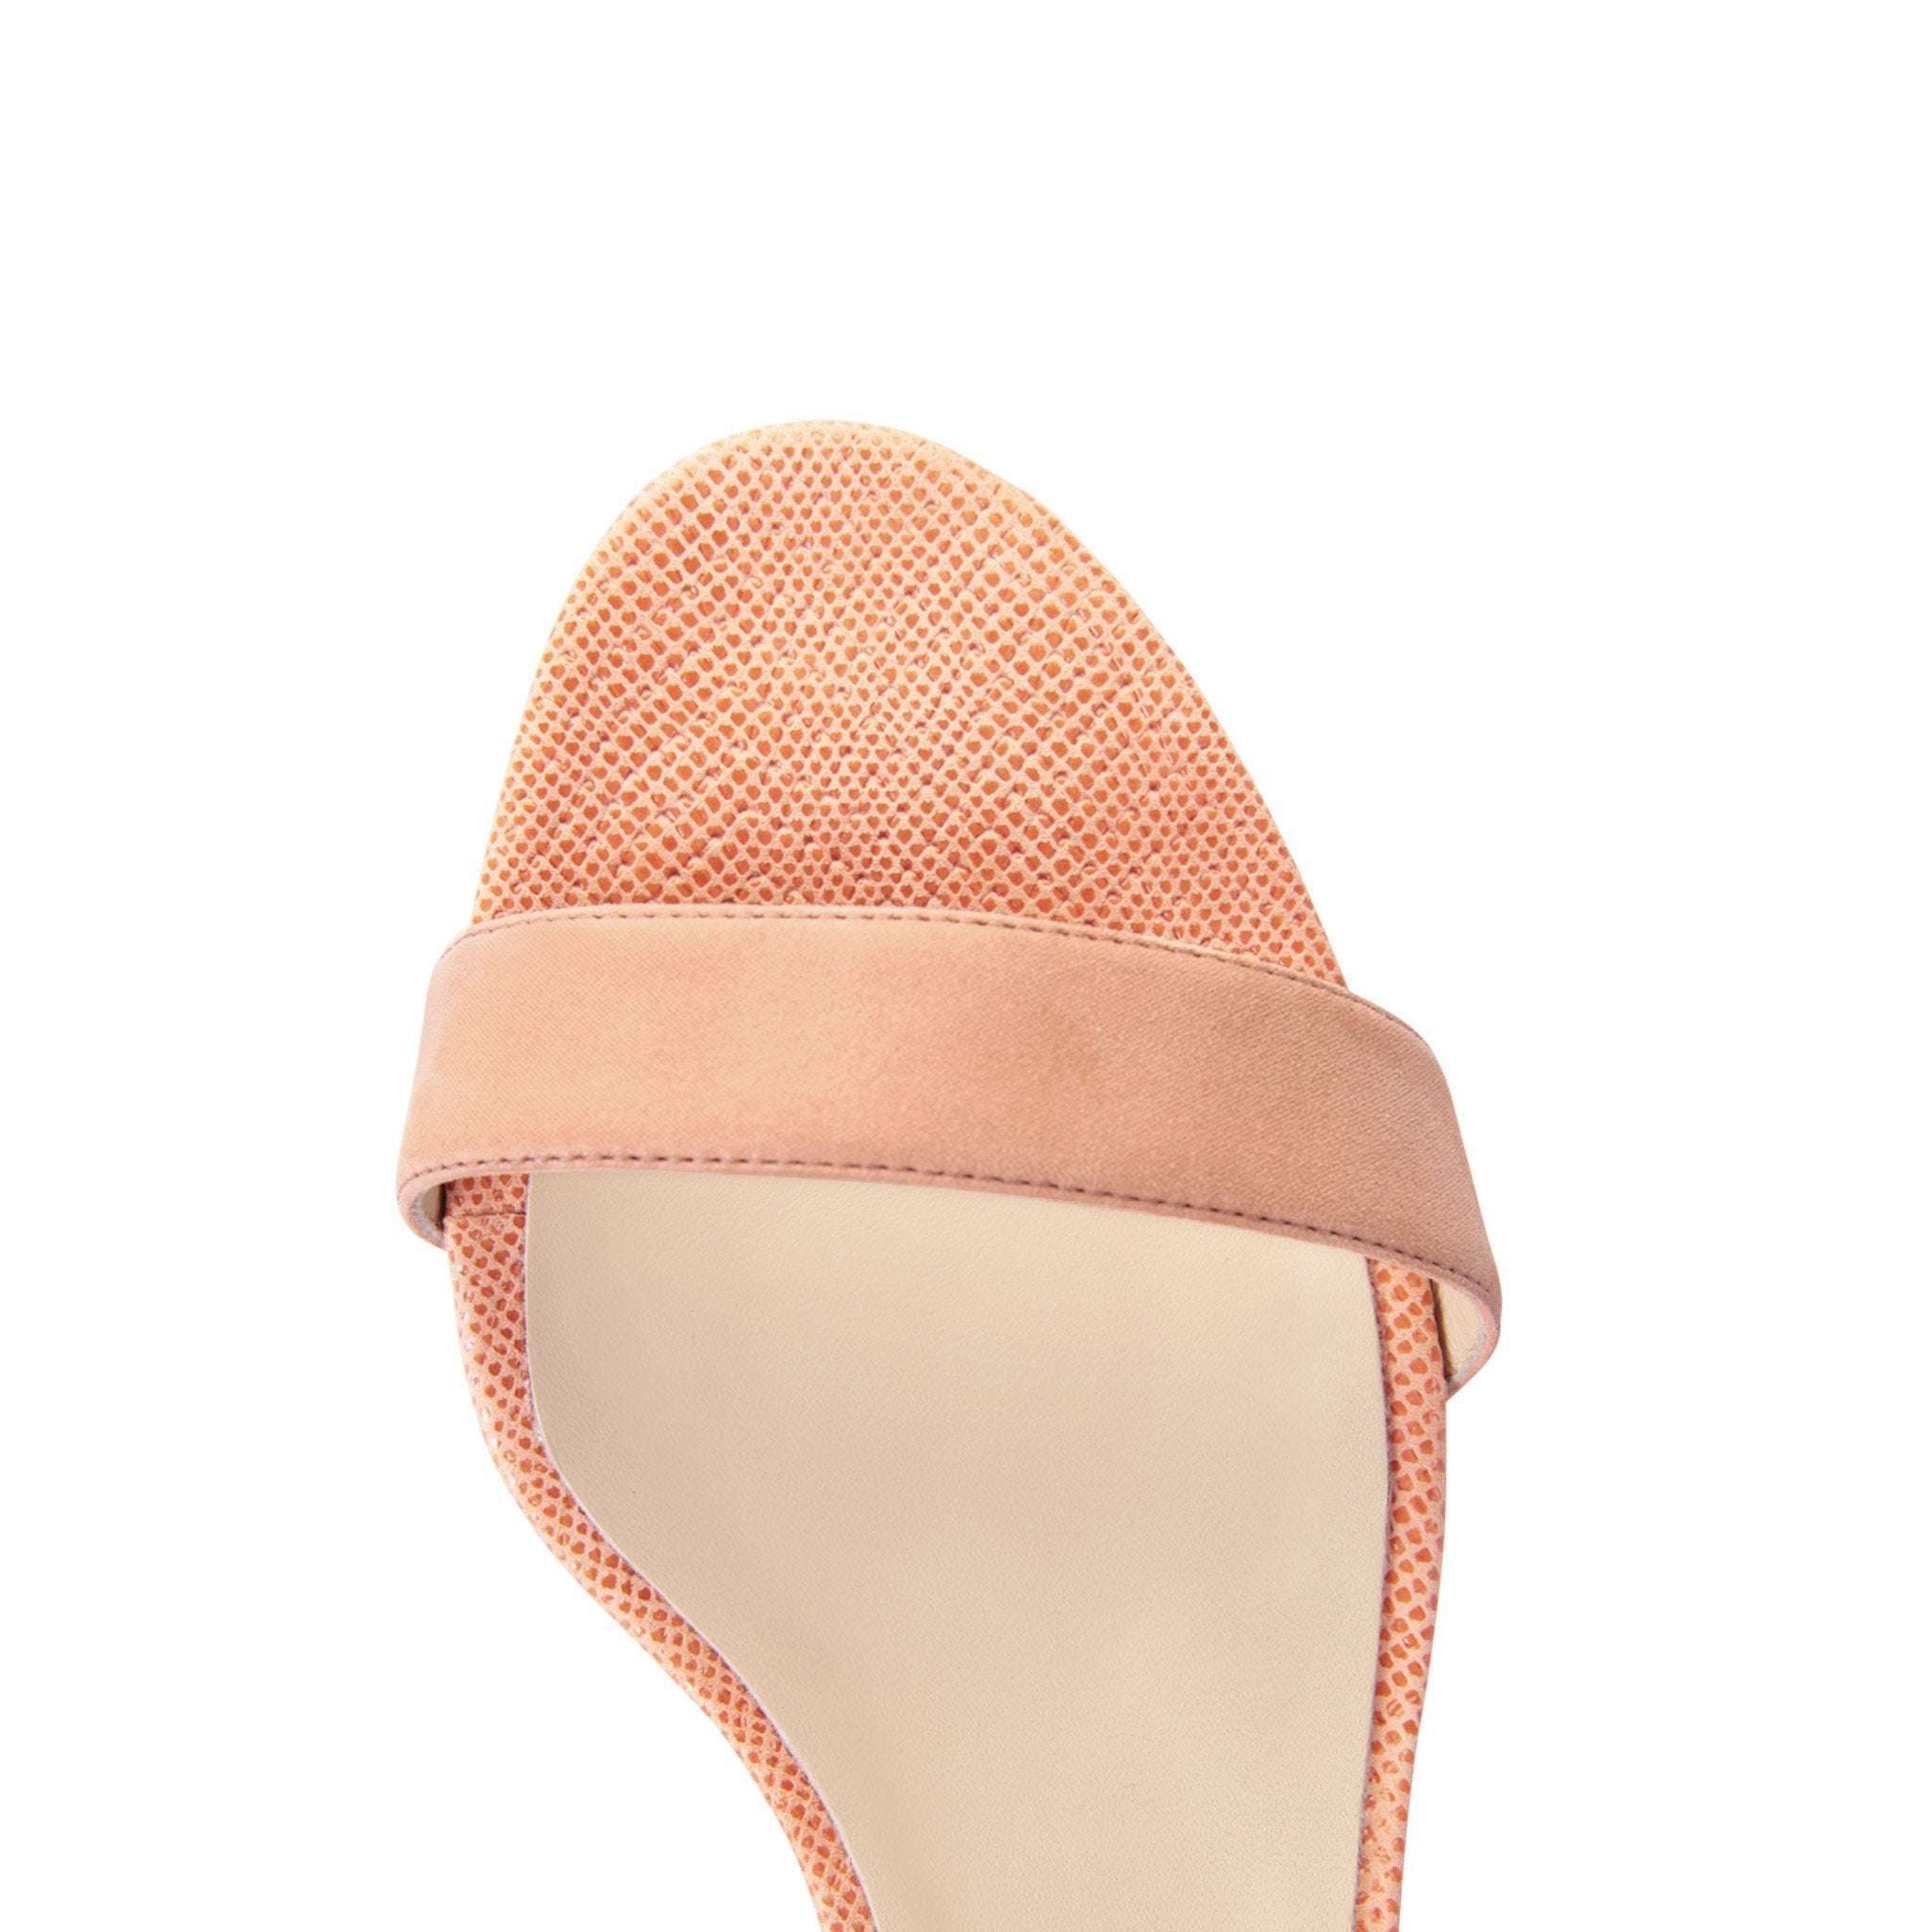 SAVONA - Hydra + Karung Rosy Cheeks, VIAJIYU - Women's Hand Made Sustainable Luxury Shoes. Made in Italy. Made to Order.